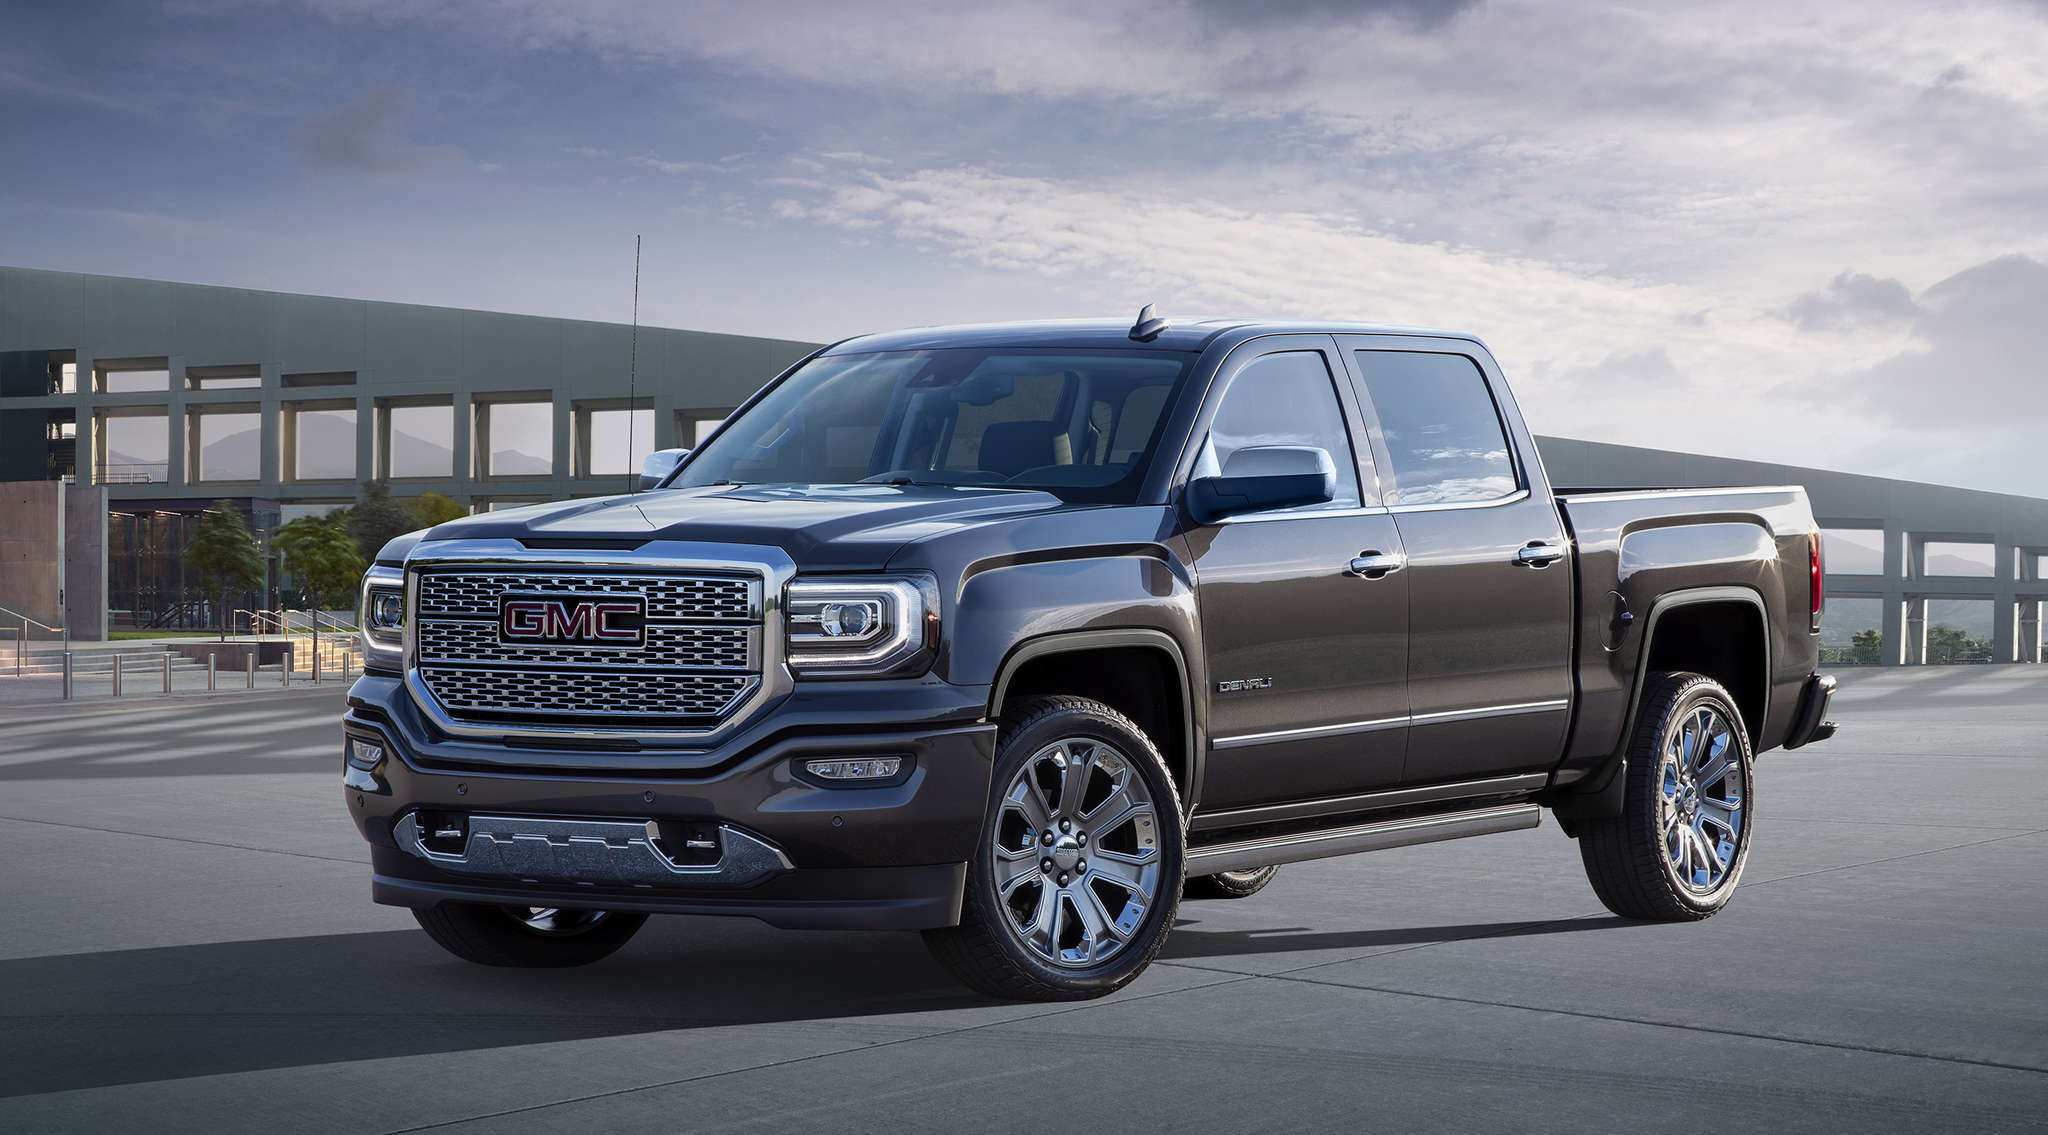 The 2016 GMC Sierra Denali: The ride could be smoother, and the reliability rating is likely to scare some buyers away.